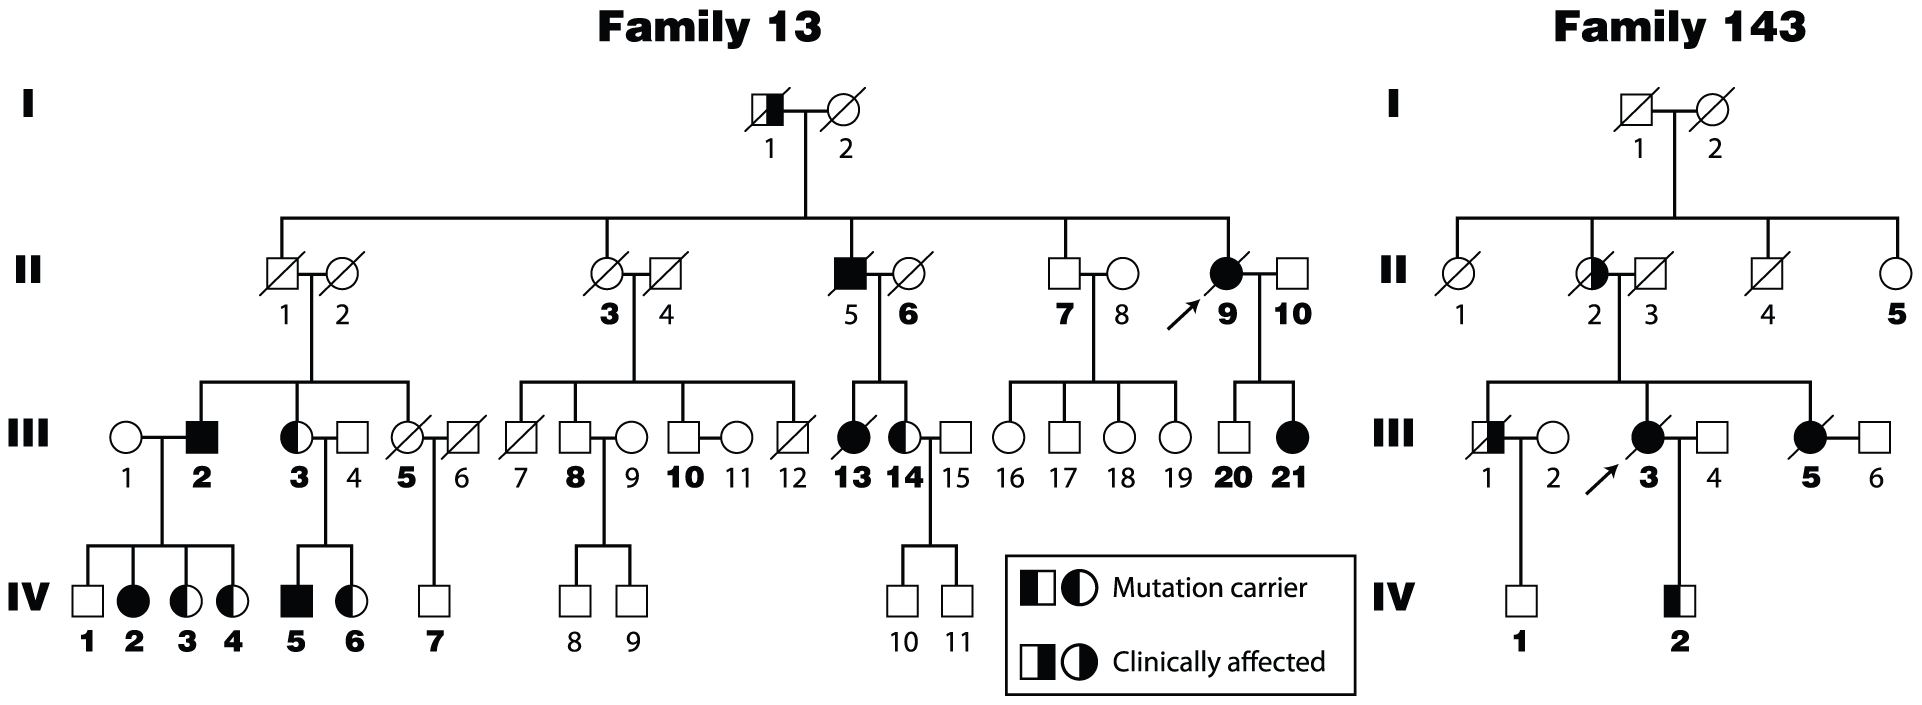 Four generation pedigrees of pulmonary fibrosis probands from Families 13 and 143 of the Vanderbilt Registry.